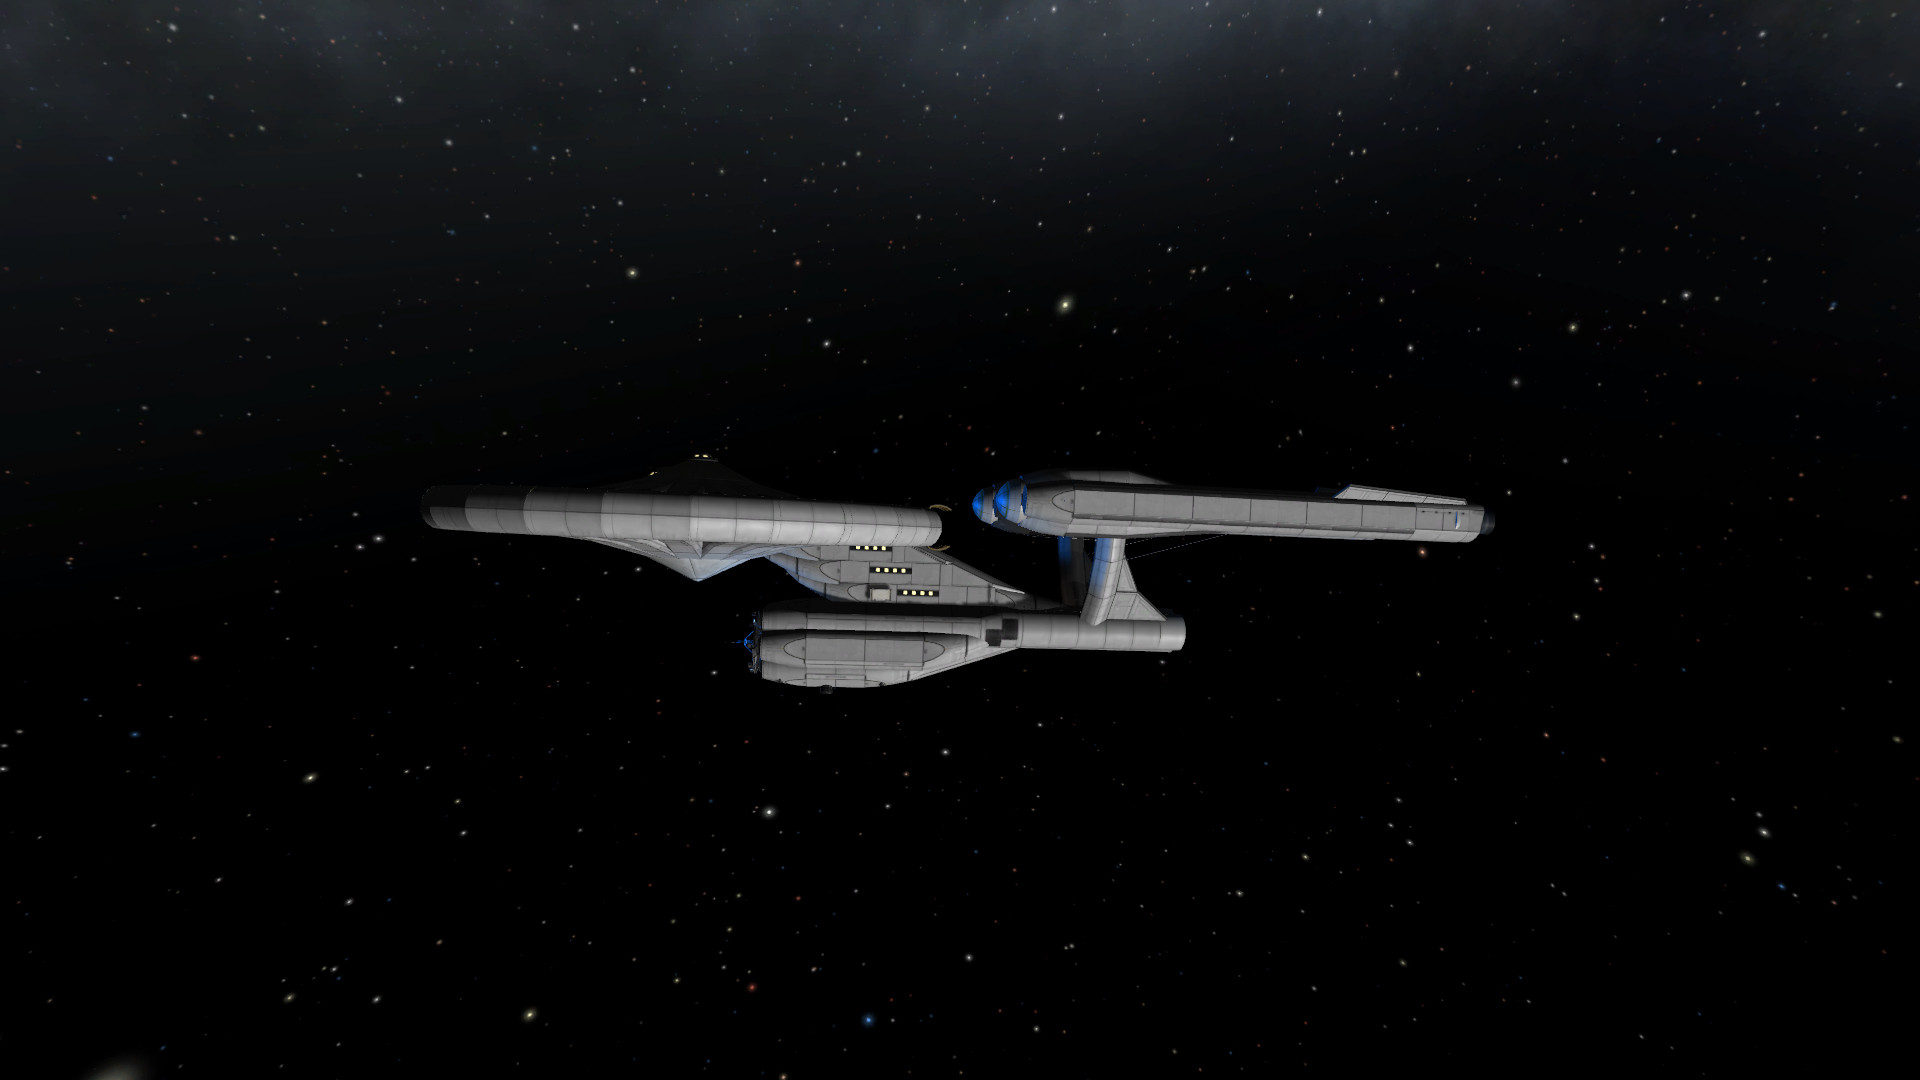 Starship Enterprise Wallpapers 68 Pictures